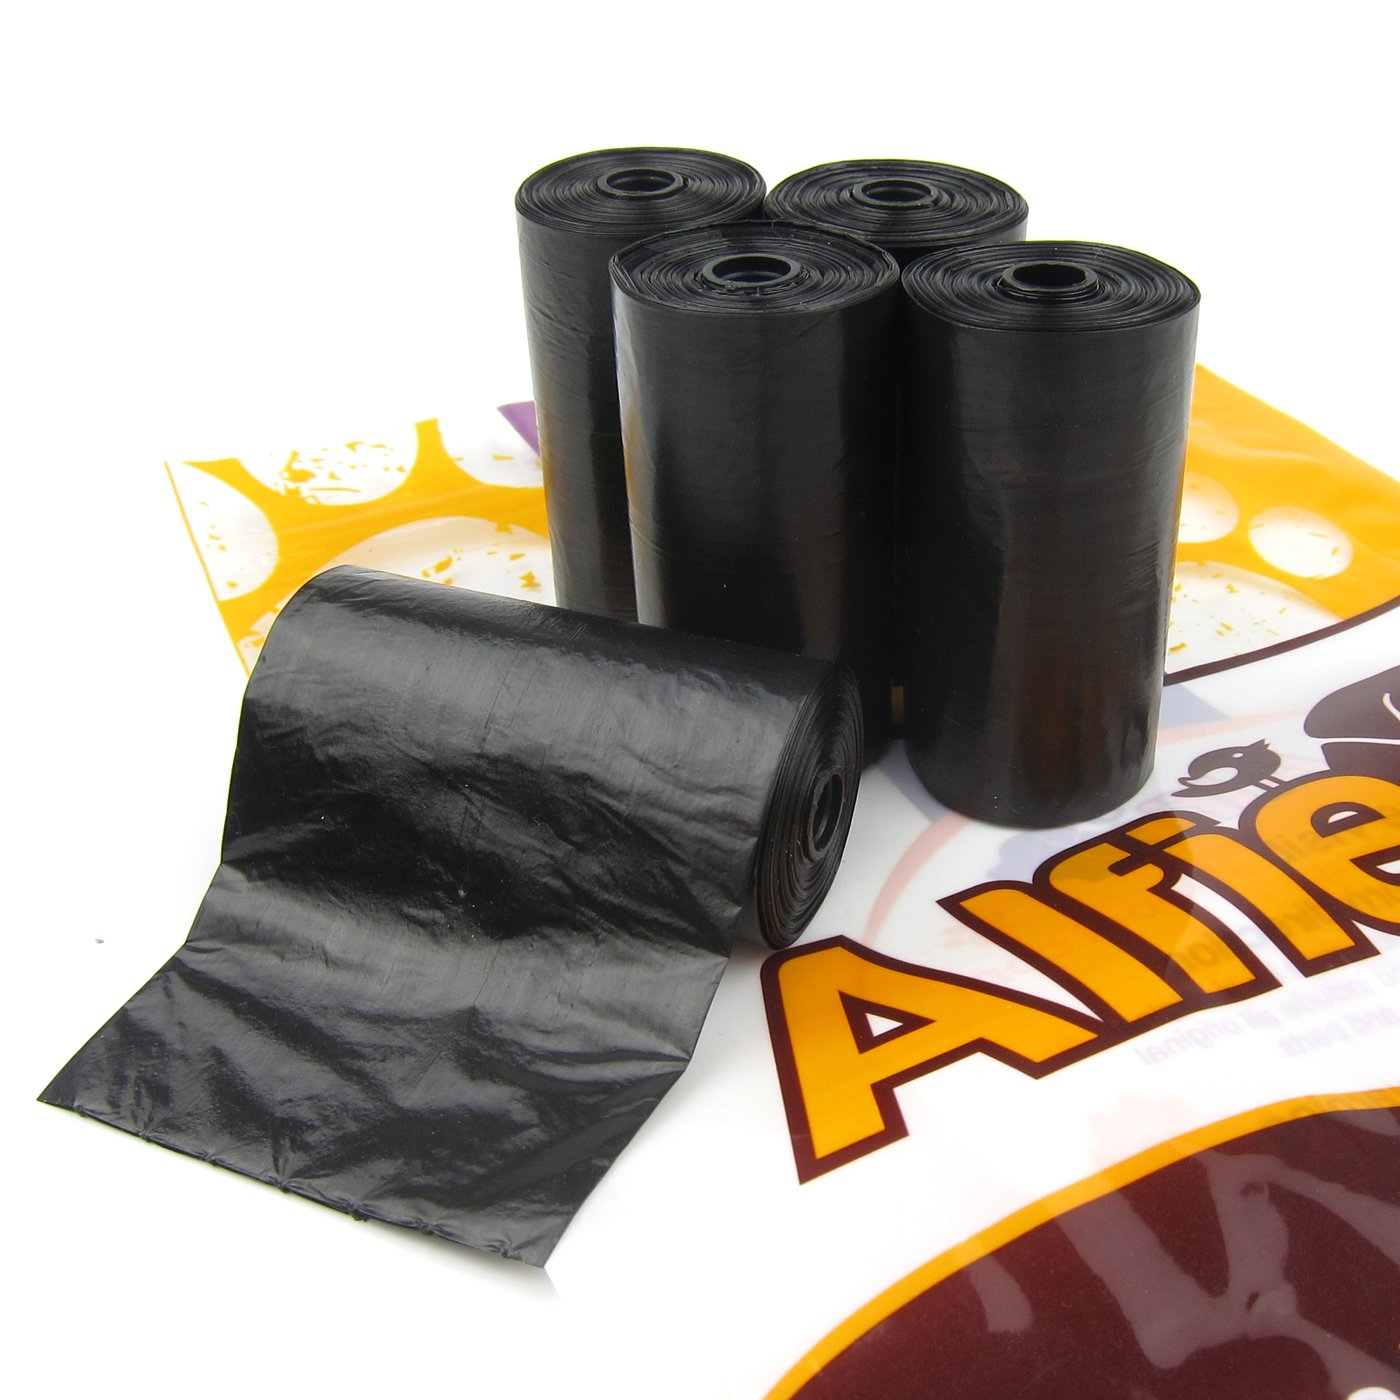 Alfie Pet by Petoga Couture - 5 Refill Rolls Bag for Jac Pet Waste Pickup tool 85%OFF